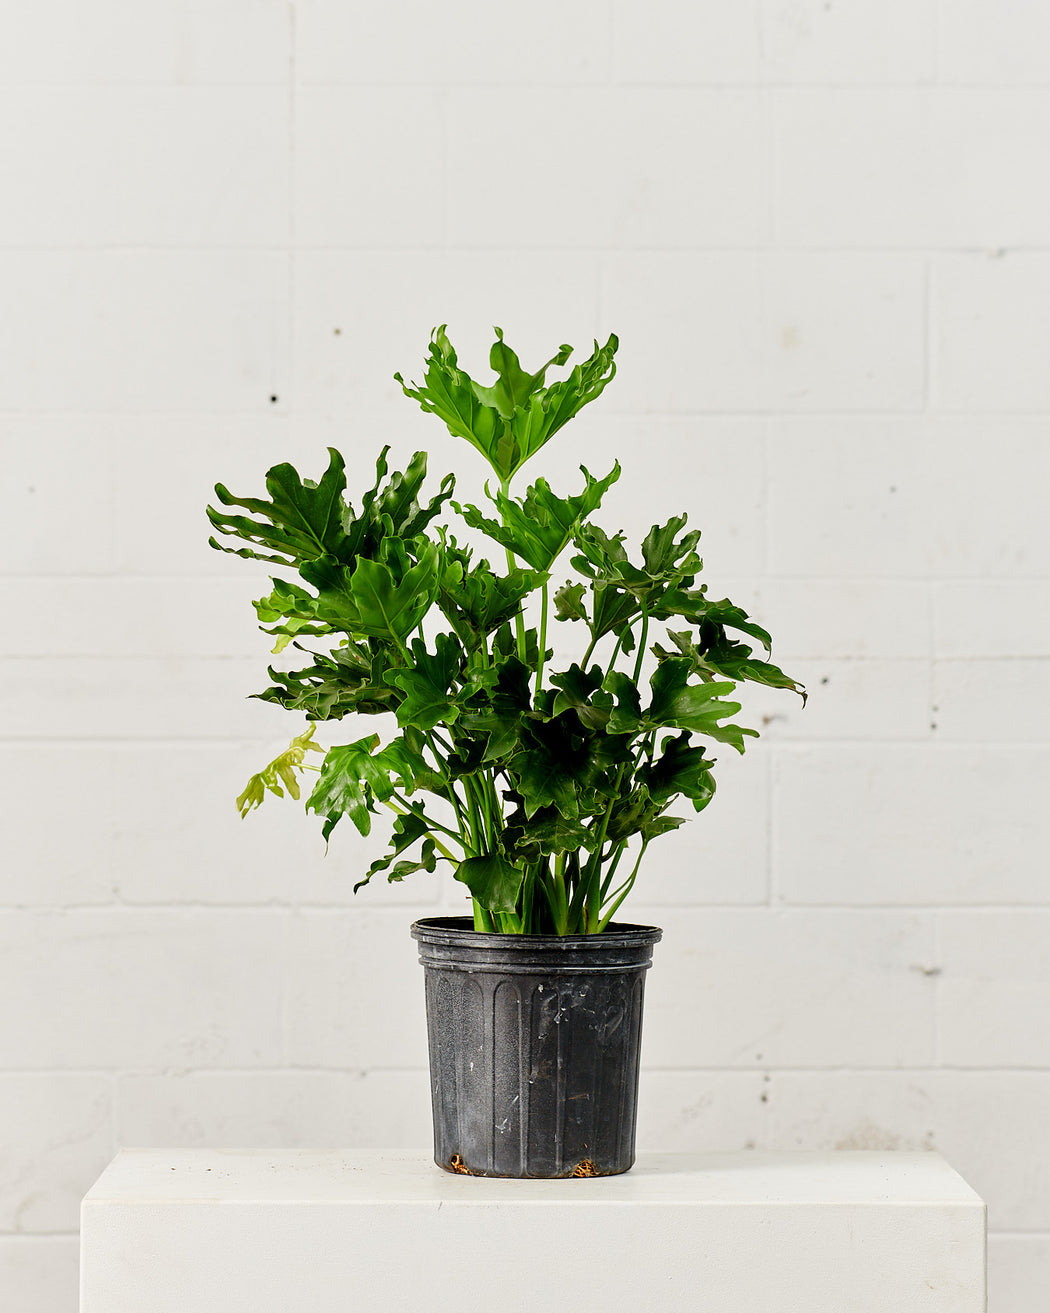 "PHILODENDRON 'SELLOUM' 8"" Grower Pot"